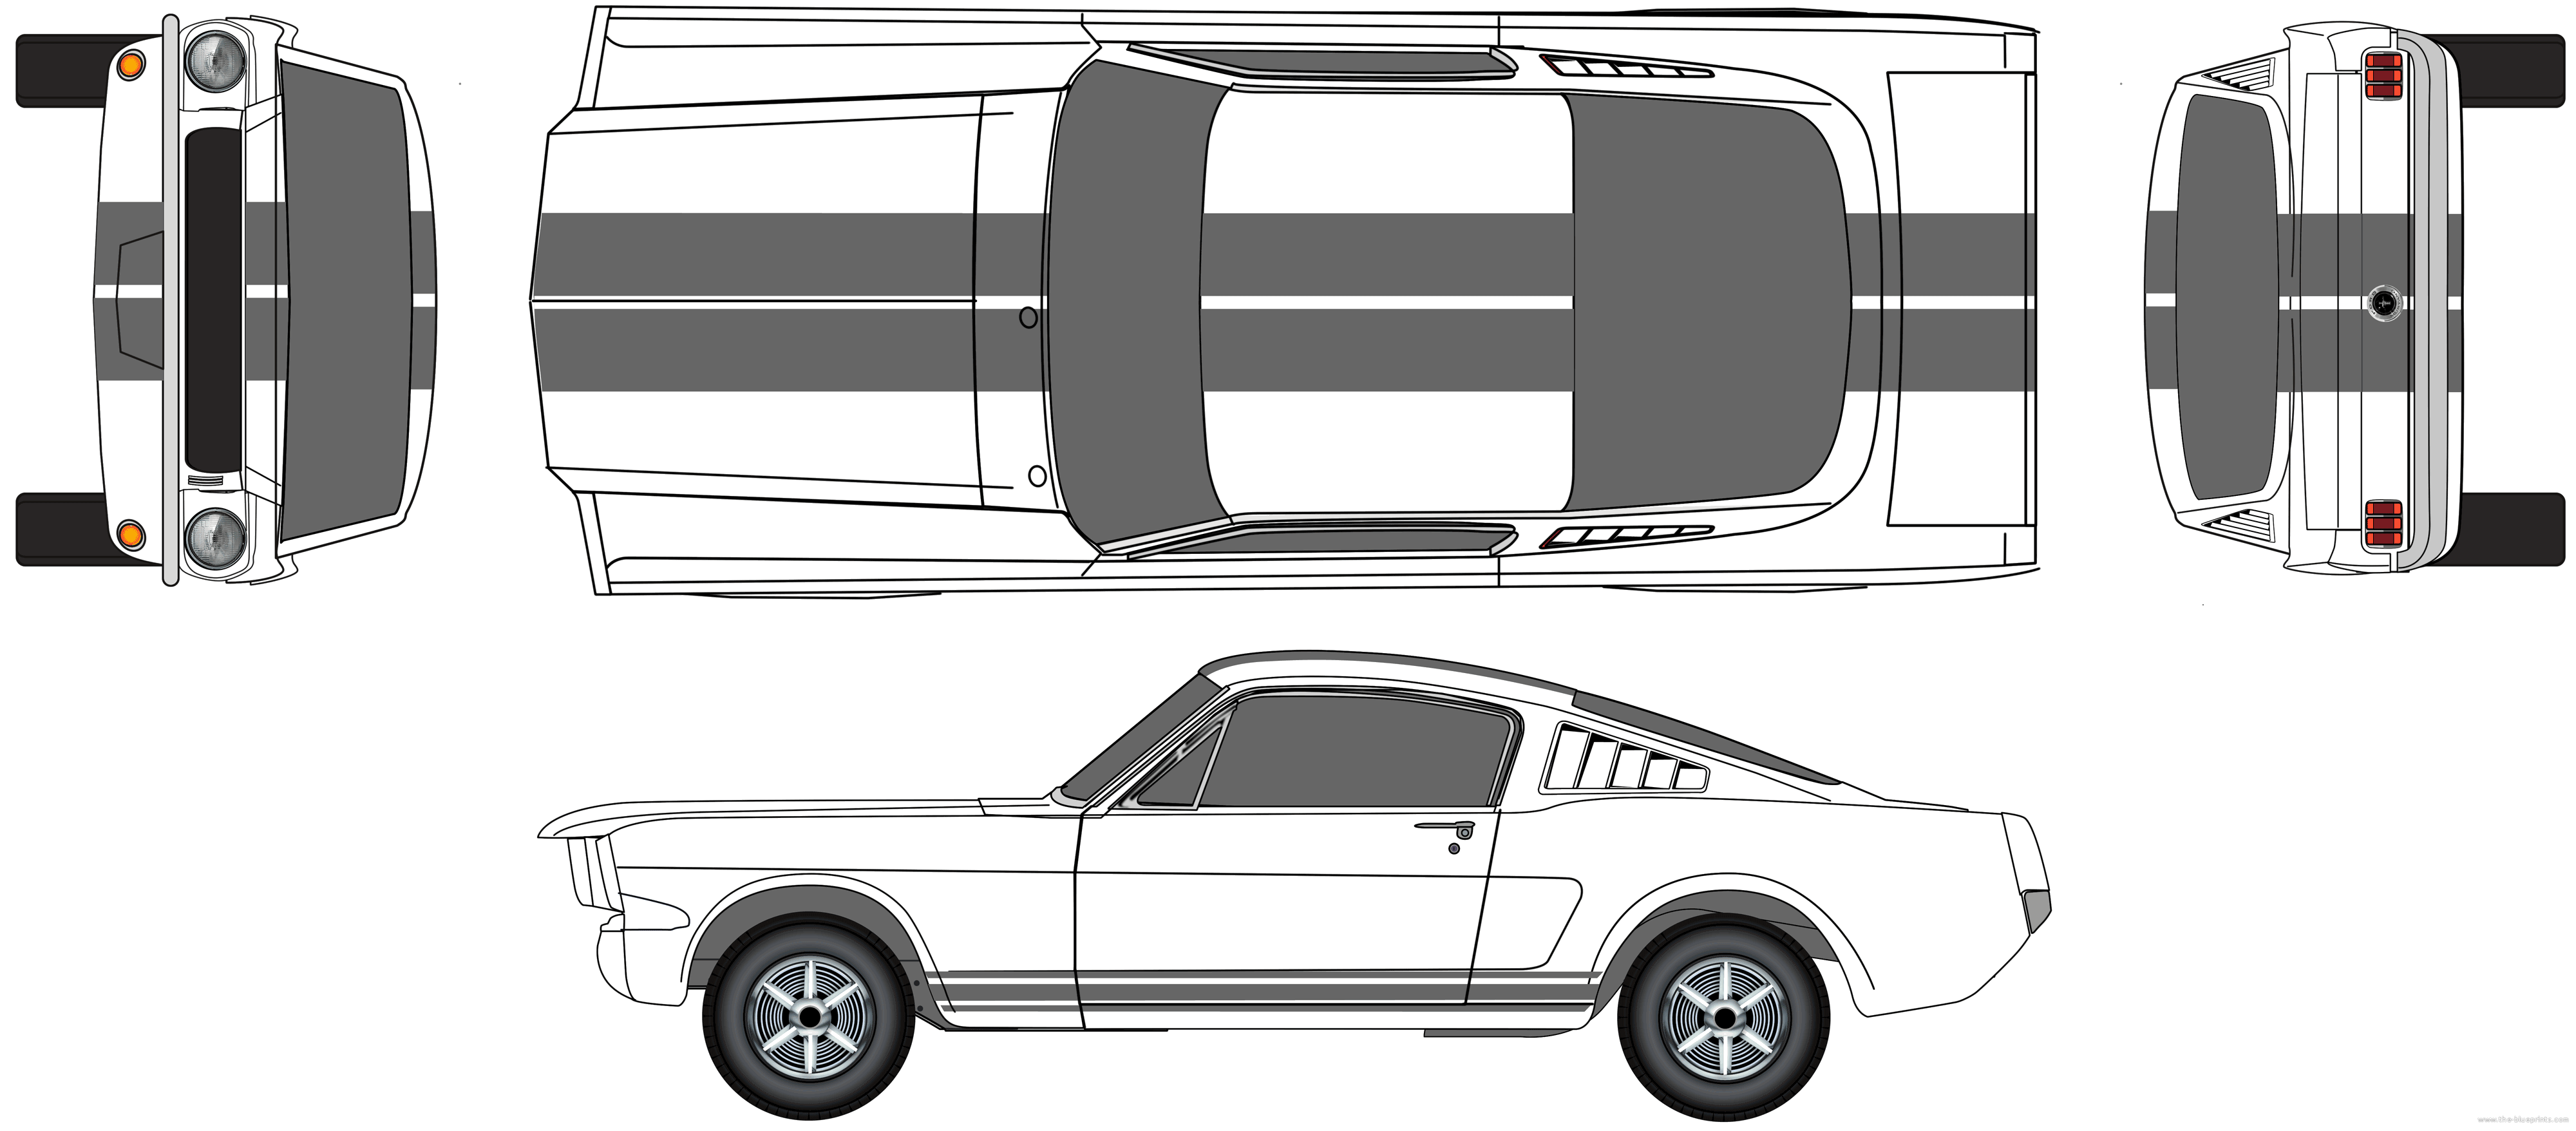 Blueprint Mustang The Vector Drawing Ford Mustang Fastback. The ...